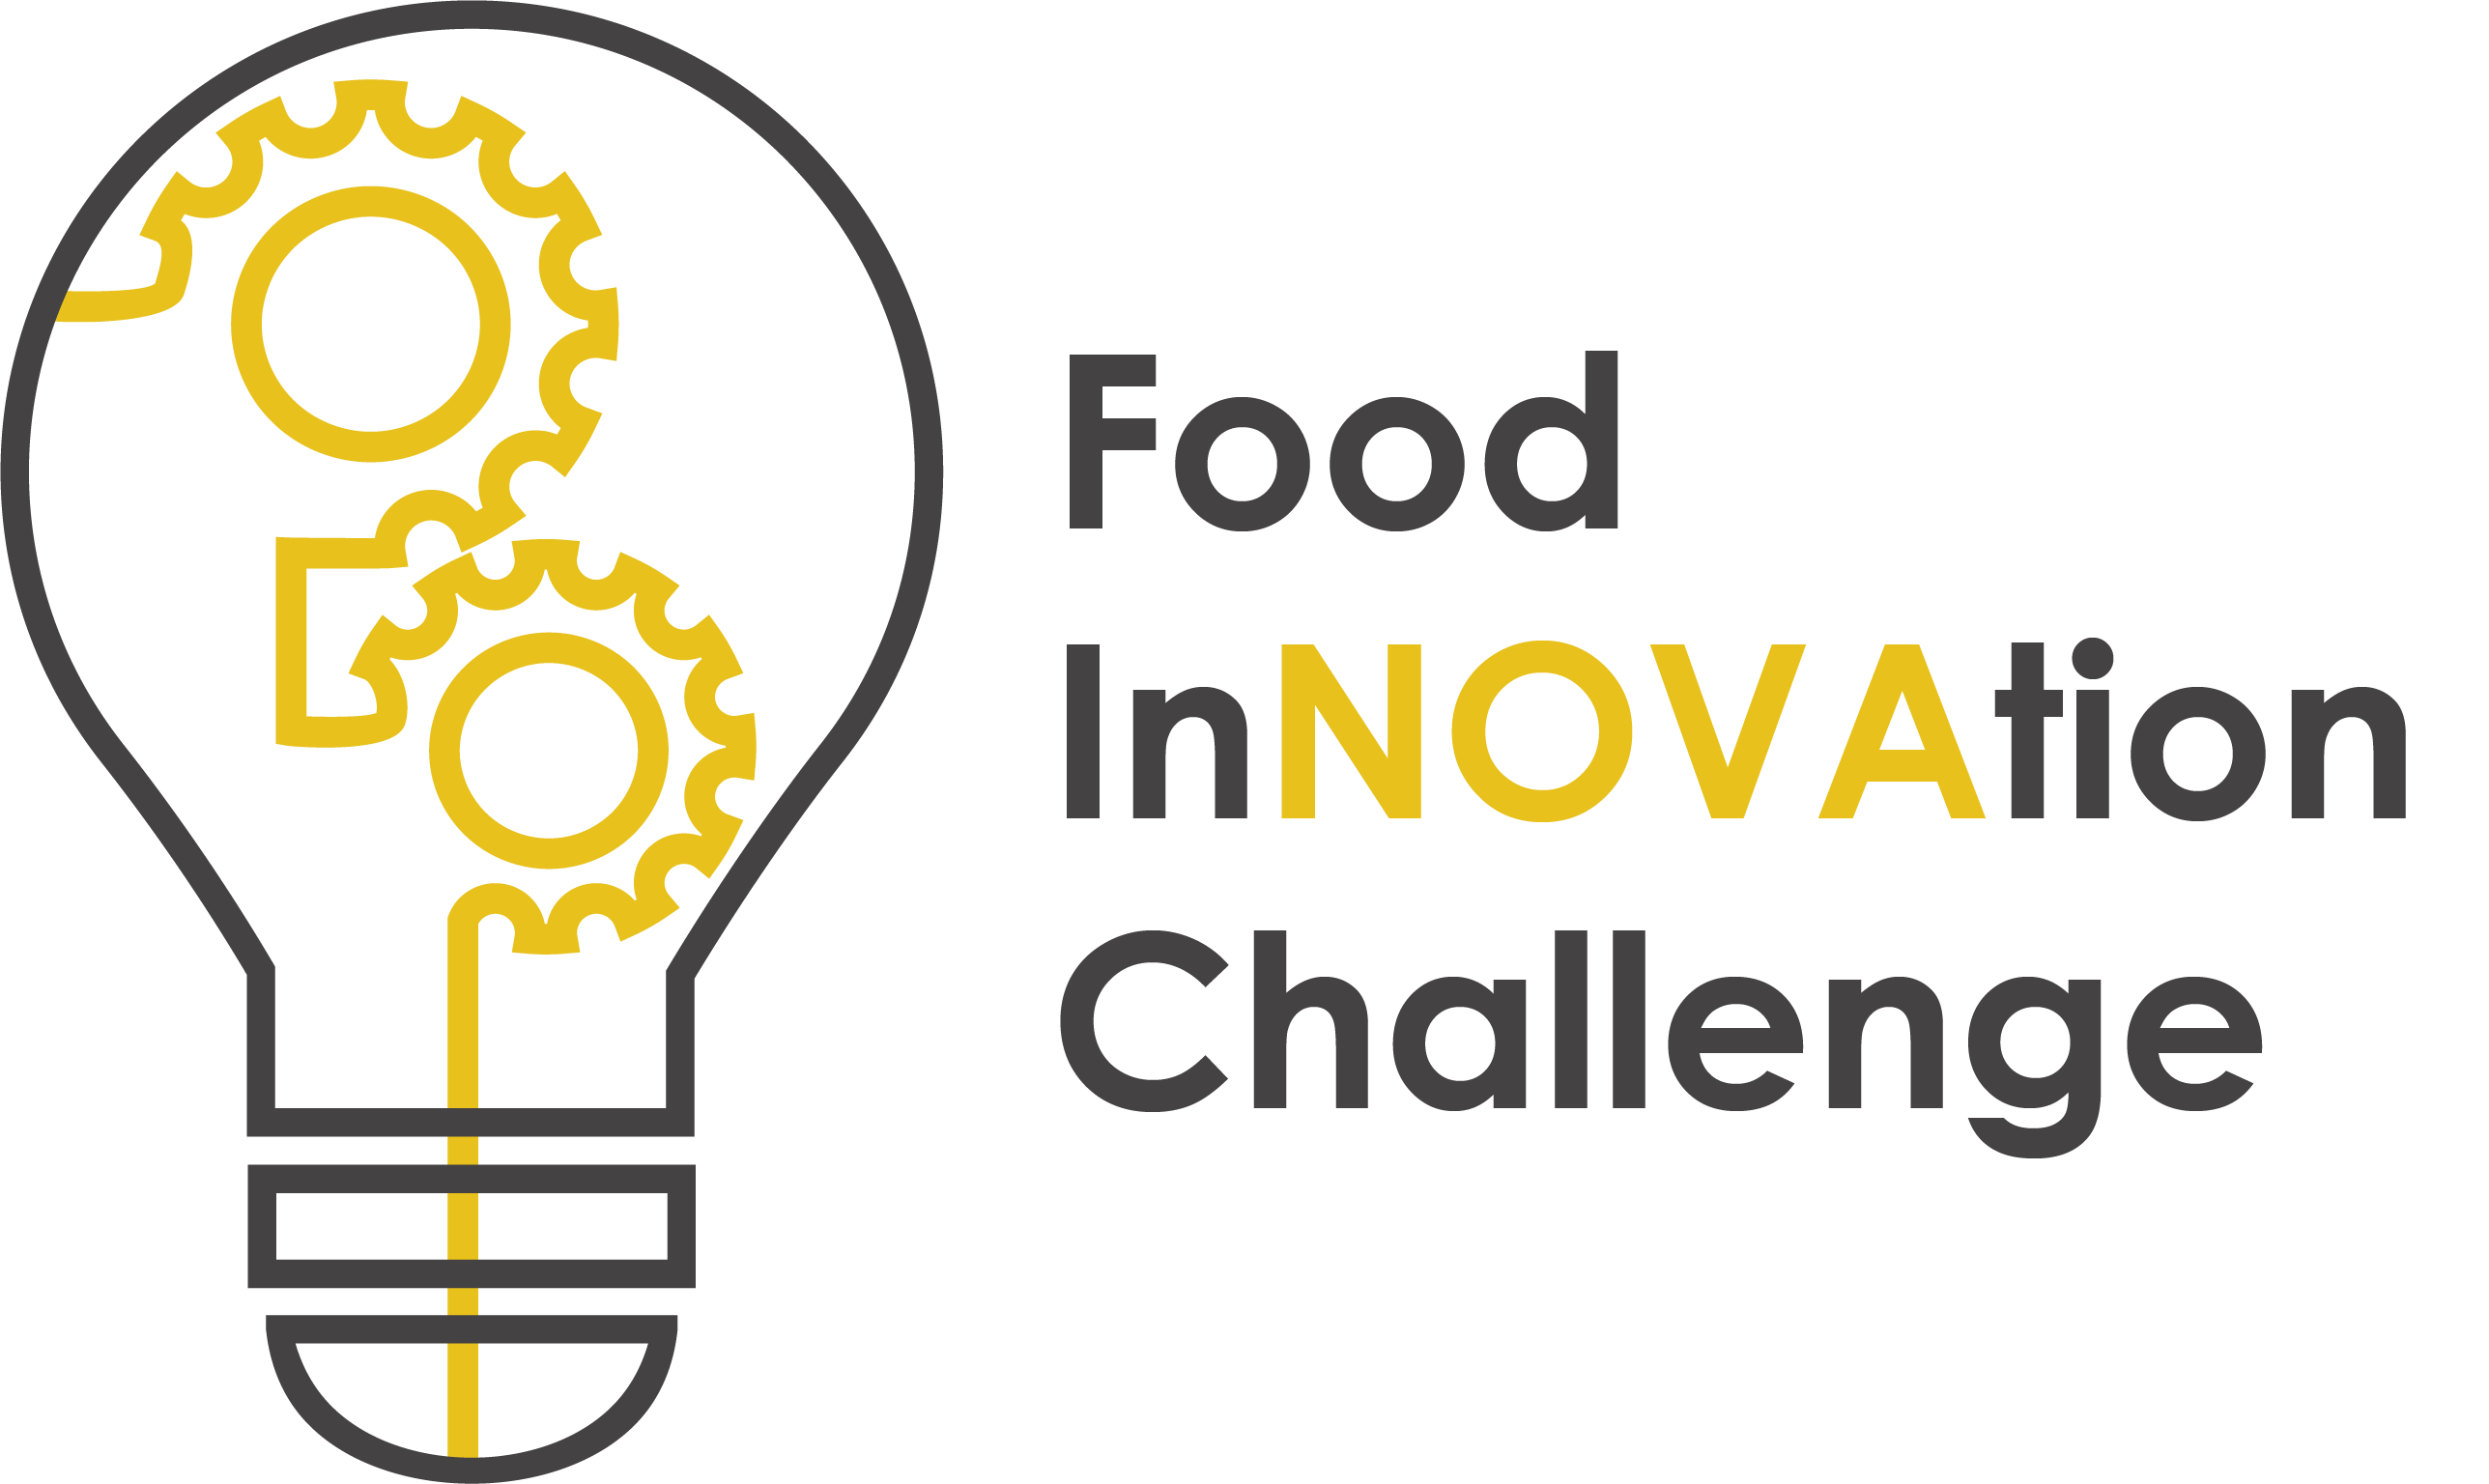 Weź udział w konkursie Food Innovation Challenge